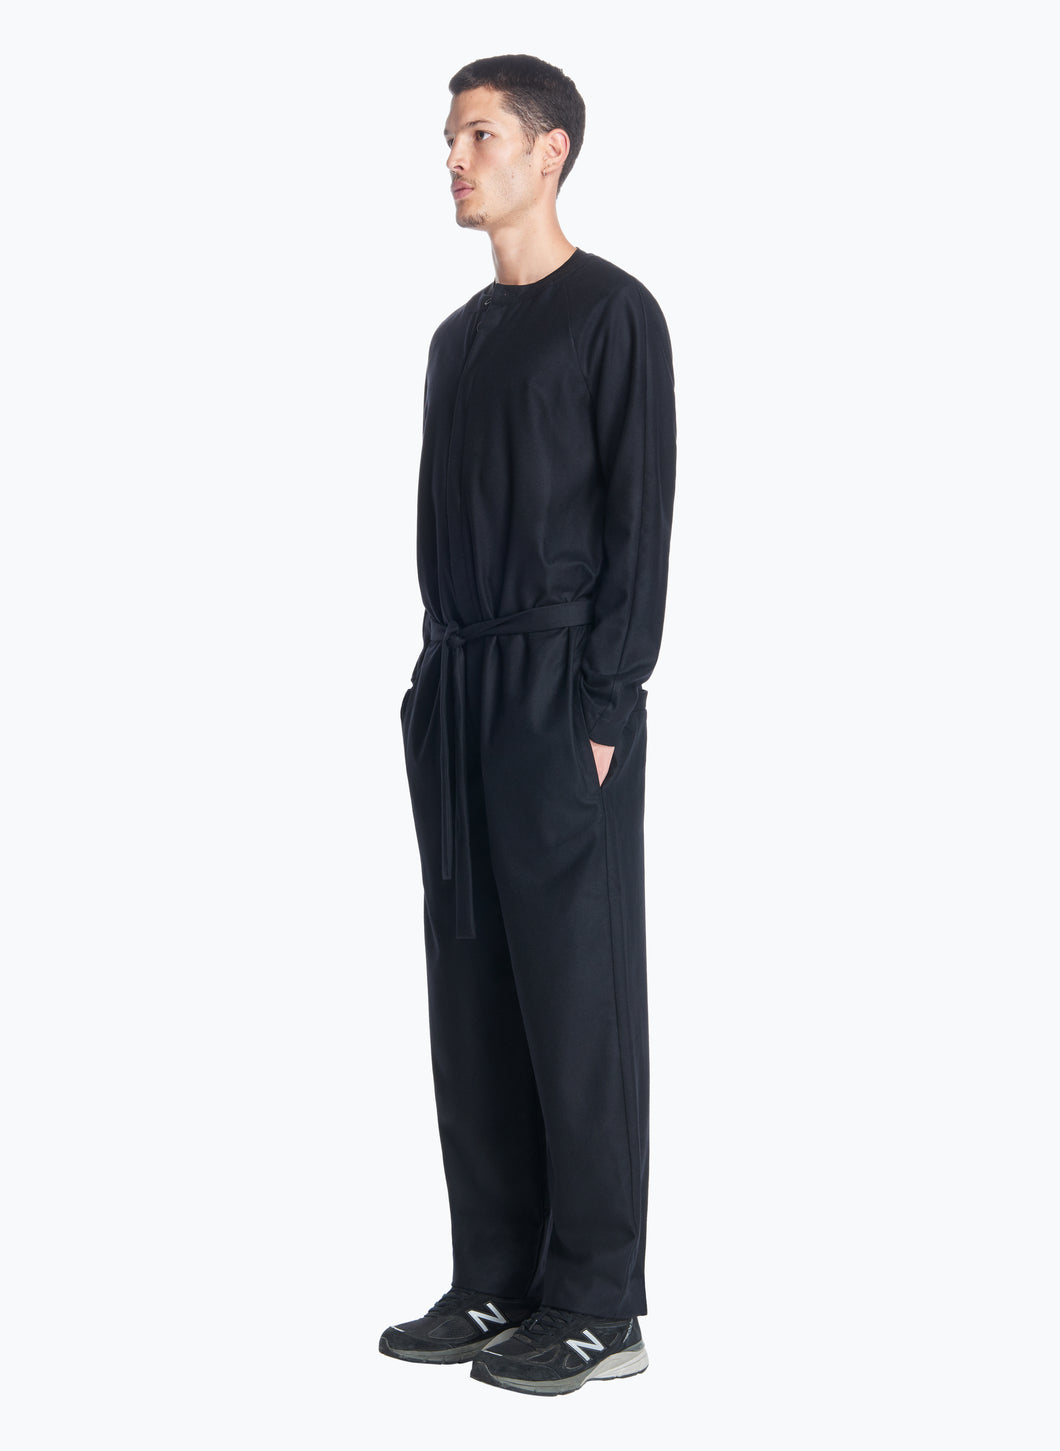 Belted Jumpsuit in Black Flannel Wool